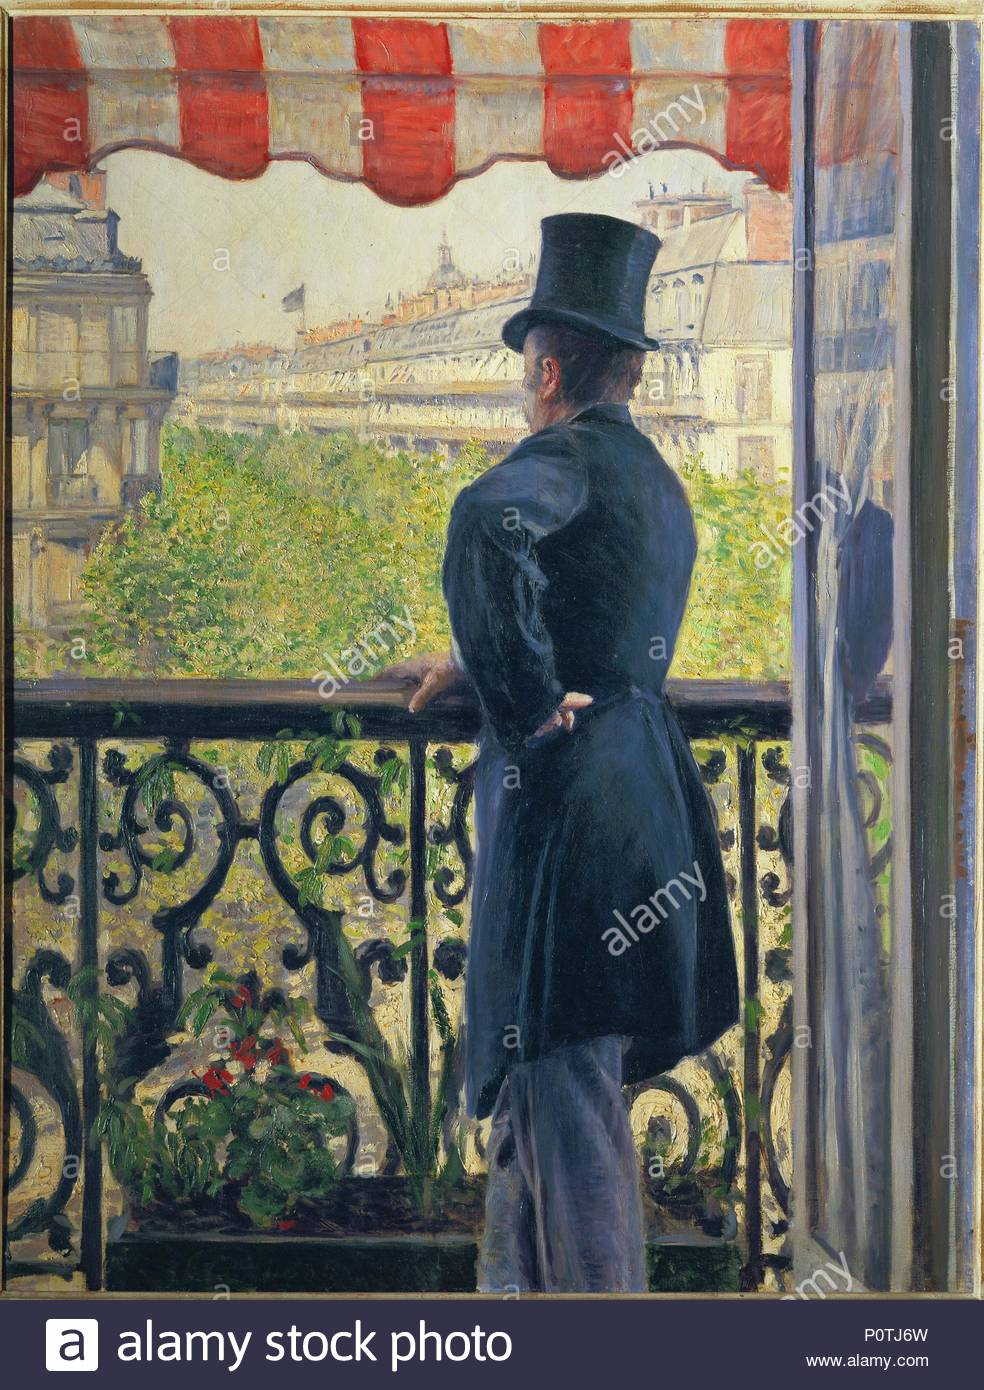 Homme au balcon, Boulevard Haussmann-Man on a balcony, Boulevard Haussmann, 1880. Oil on canvas, 117 x 90 cm. Author: Gustave Caillebotte (1848-1894). Location: Private Collection,, Switzerland. - Stock Image